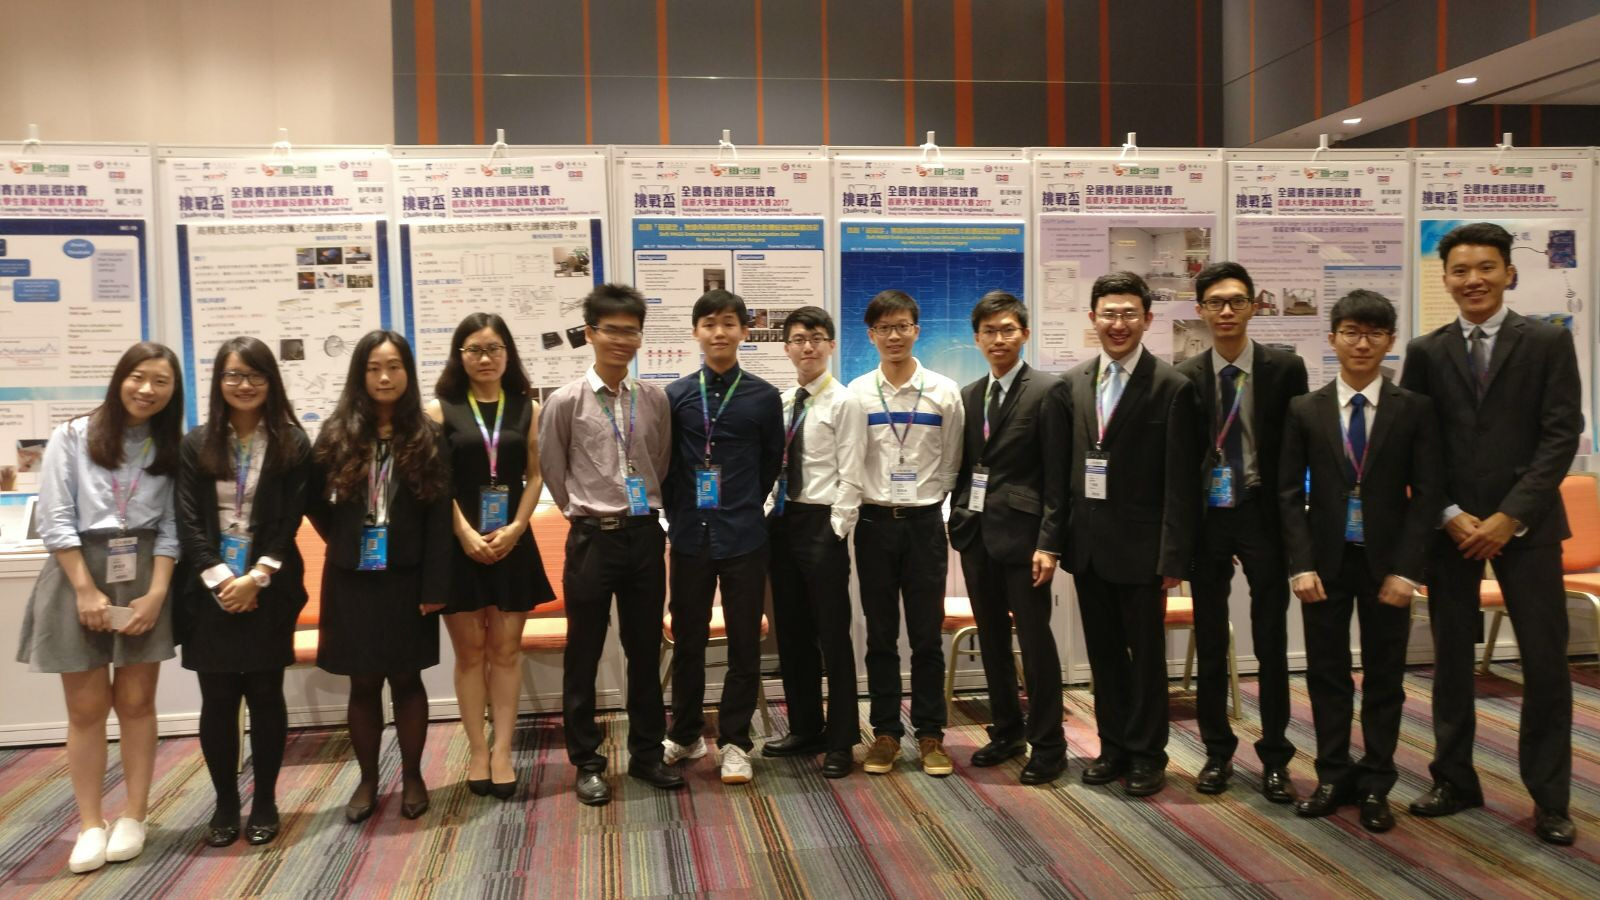 A group photo of CUHK contestants